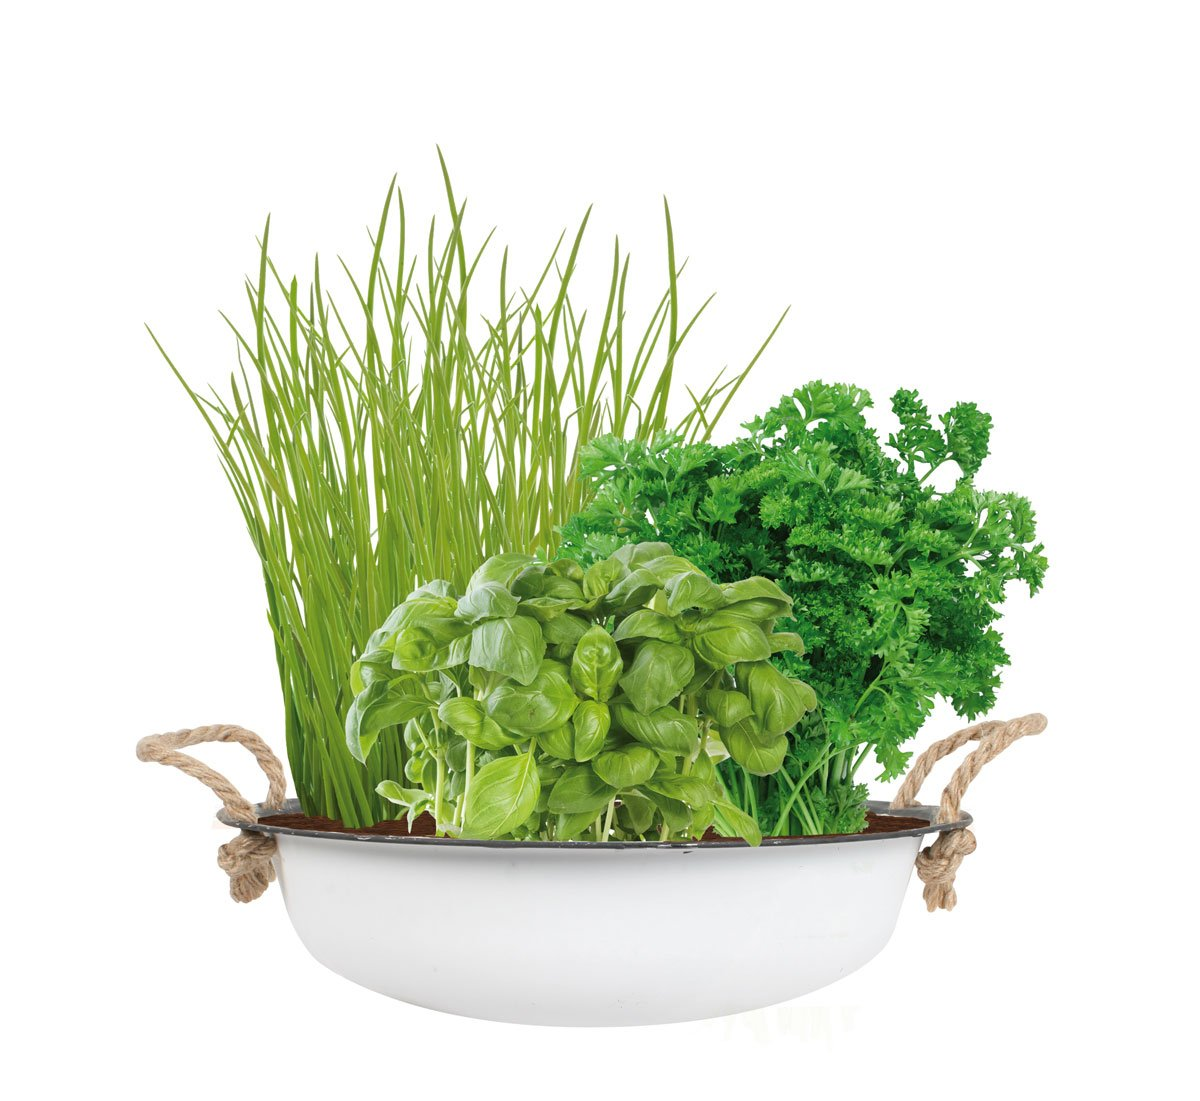 TotalGreen Holland Urban City Herb Garden | Grow Your Own Herbs | Easy to Grow Basil, Parsley and Chives That are Guaranteed to Grow | Unique Germination Kit for in- & Outdoor | Exclusively